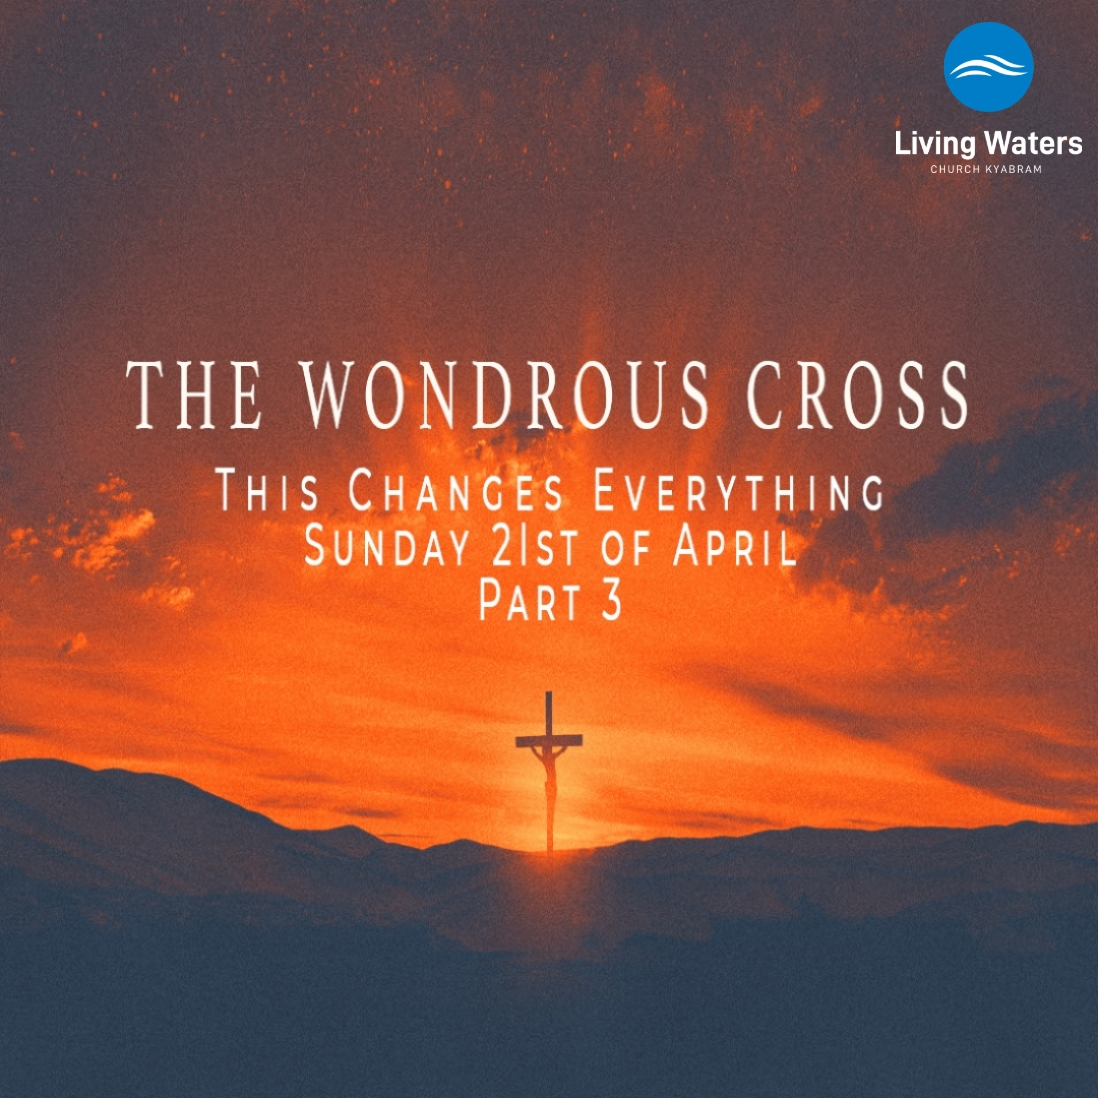 Every Place – Easter 2019 Part 3 The Wondrous Cross